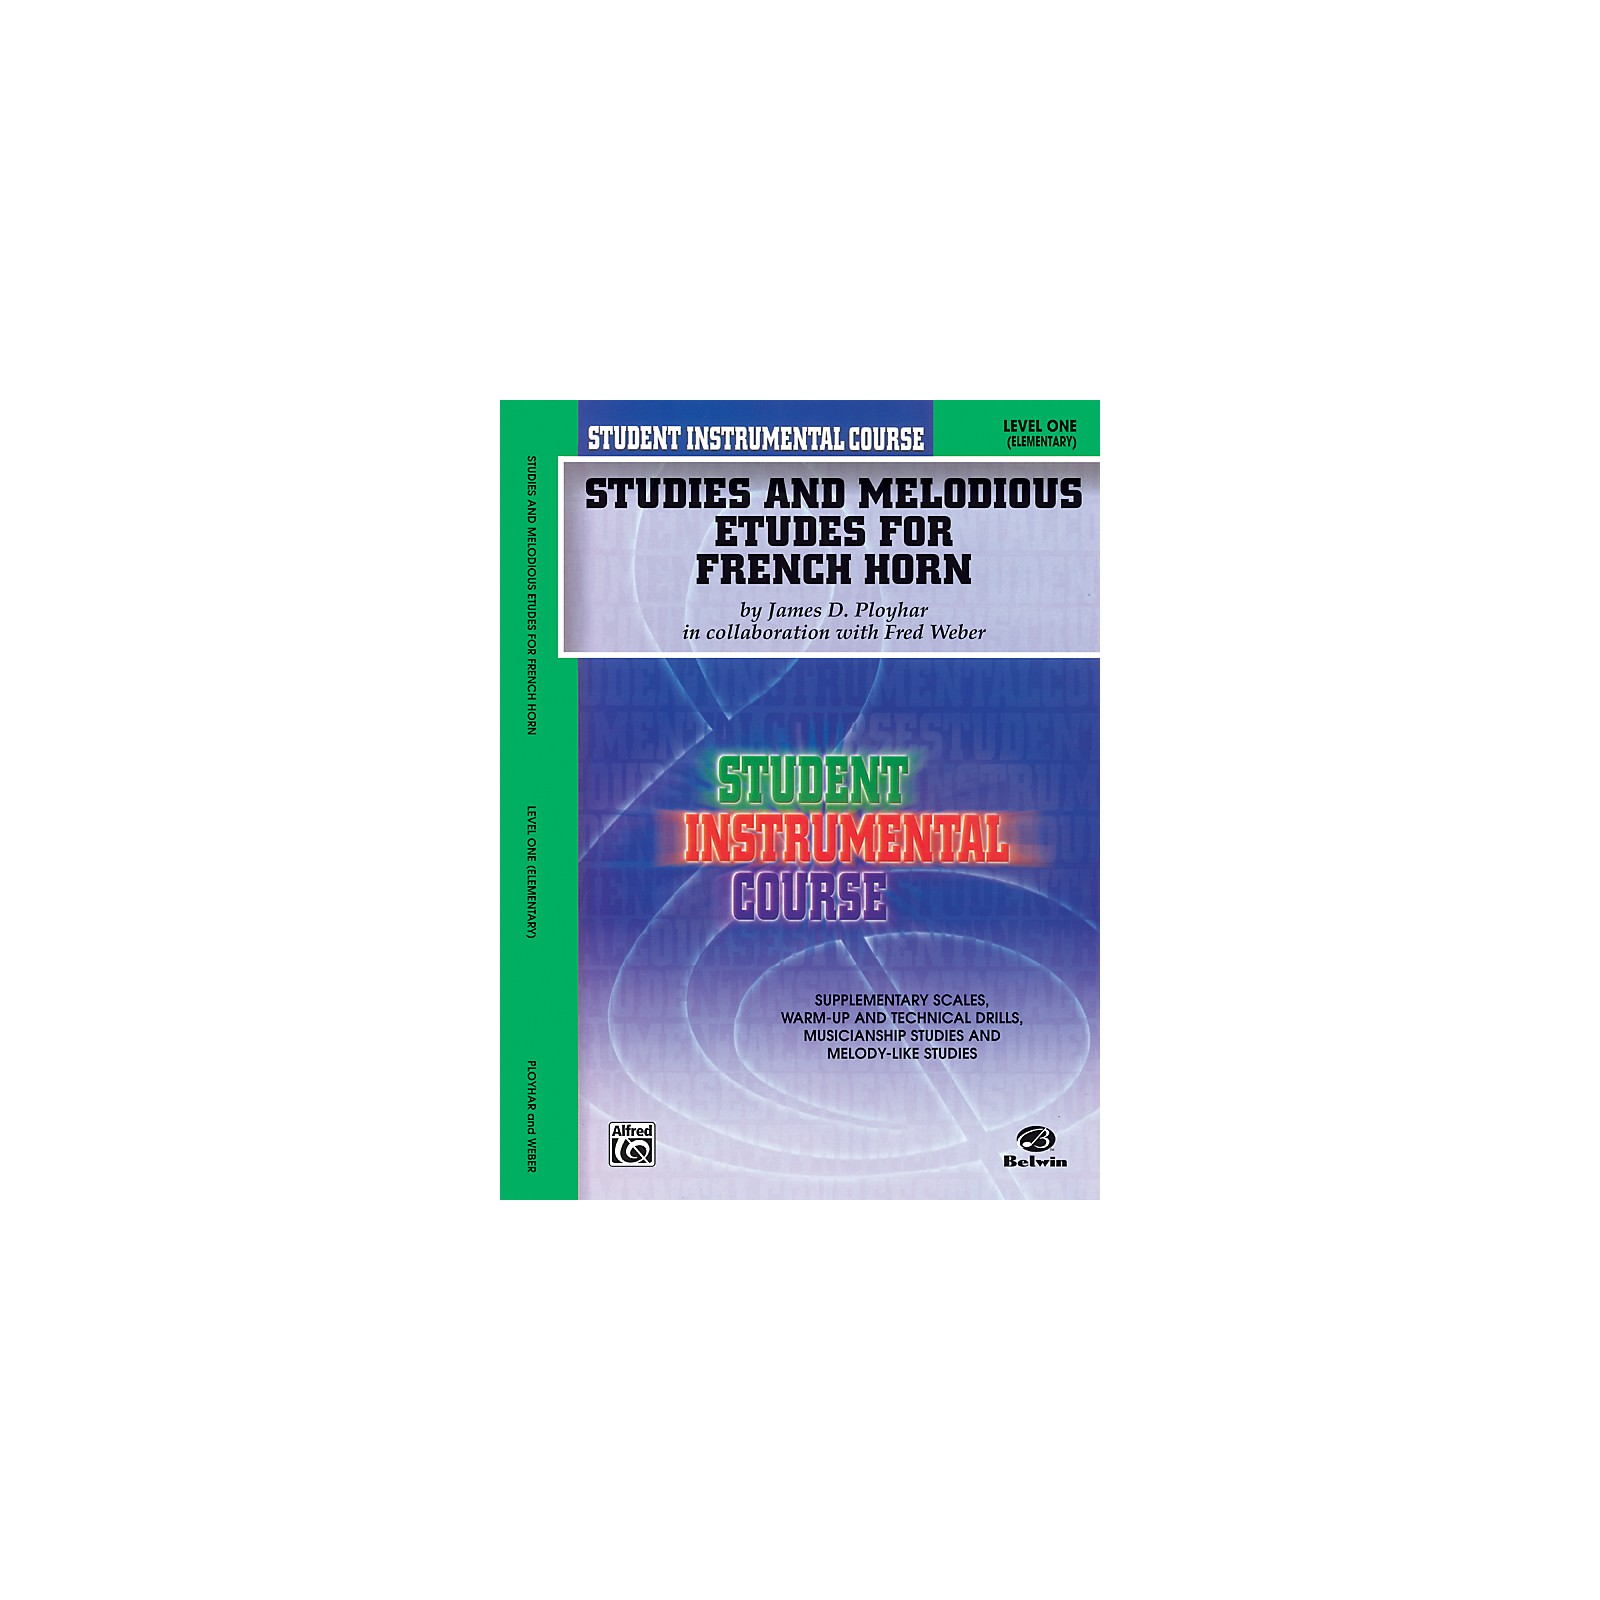 Alfred Student Instrumental Course Studies and Melodious Etudes for French Horn Level I